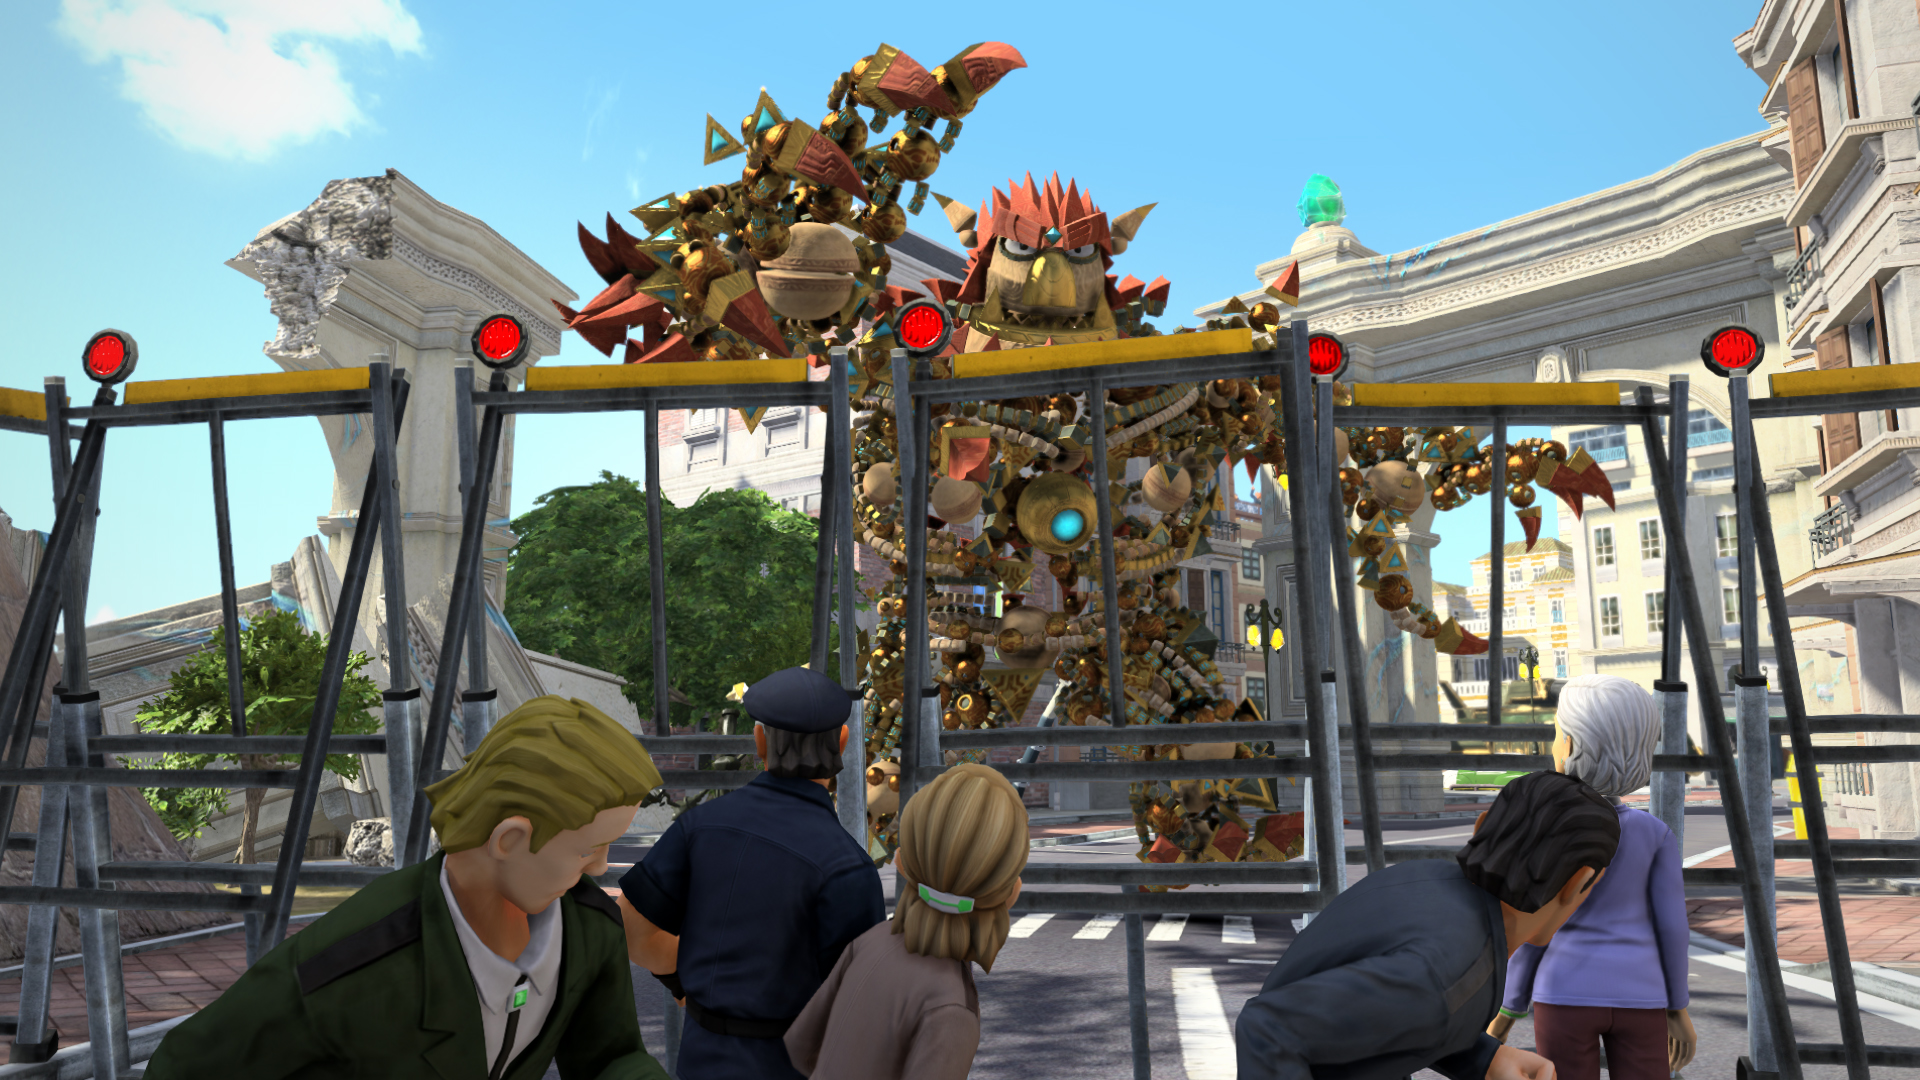 Скриншот *Knack [PS4 Exclusive] 5.05 / 6.72 / 7.02 [EUR] (2013) [Русский] (v1.10)*